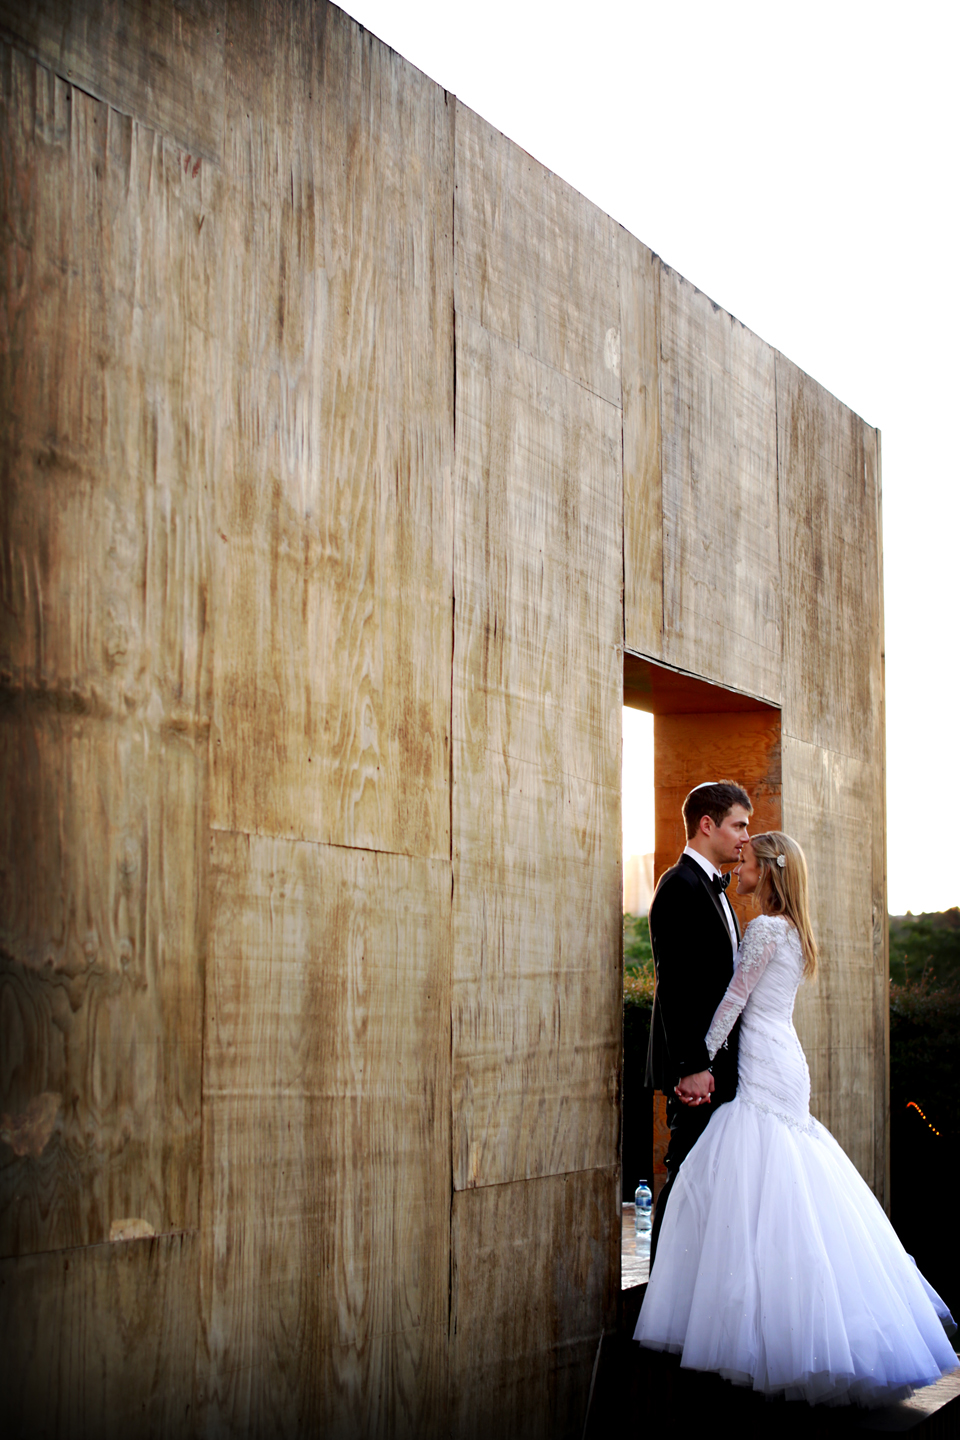 jewish-wedding-sandton-urban-tree-wedding-photographers-estilo-photography-best-wedding-photographers-johannesburg211.jpg